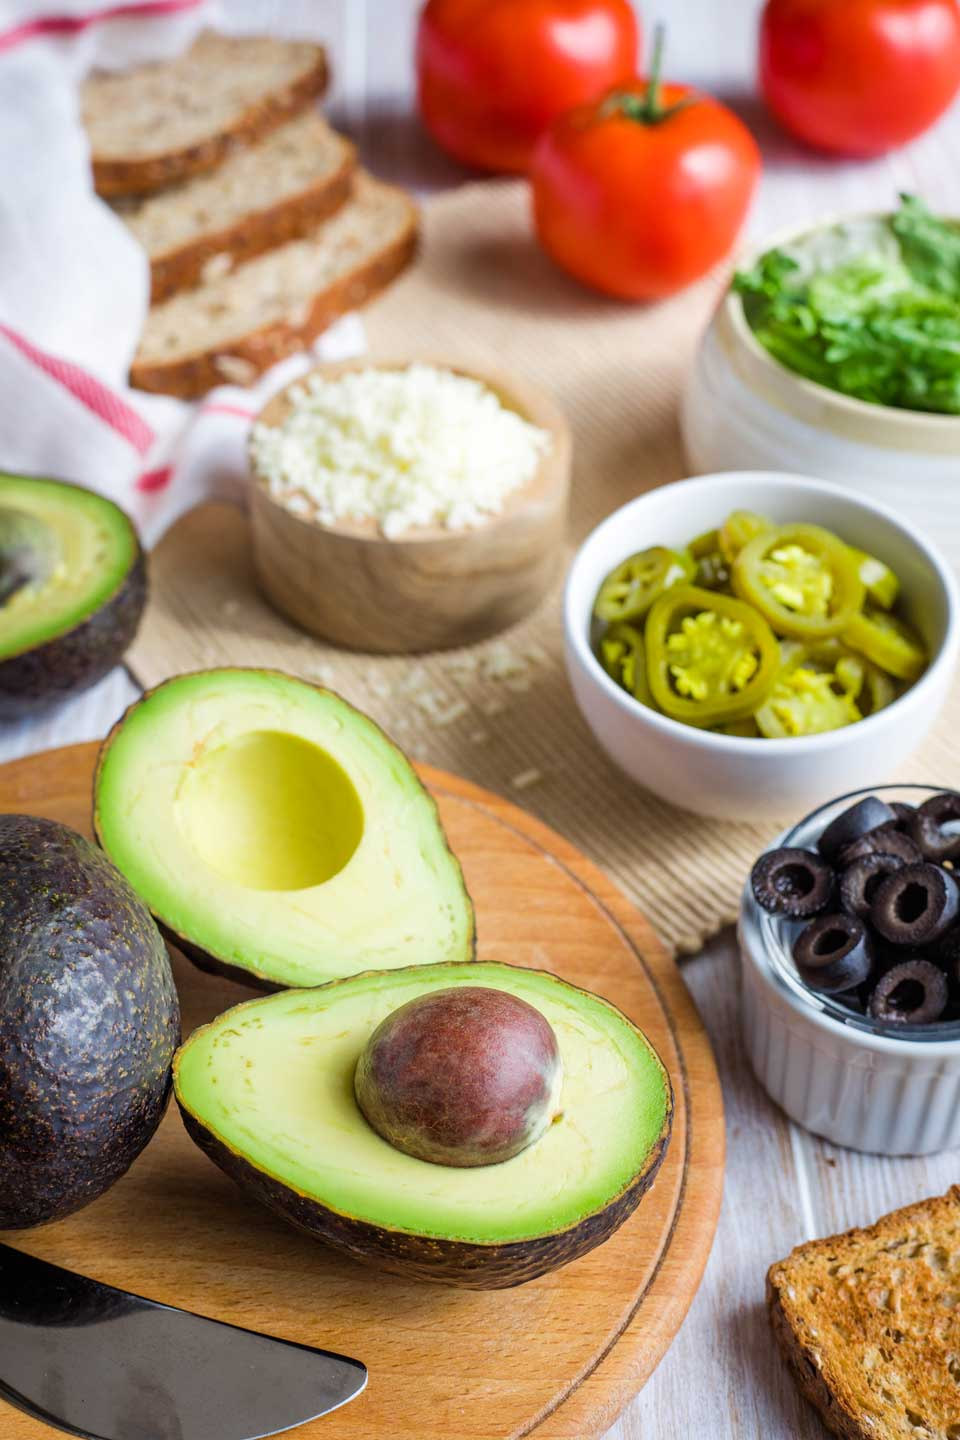 ingredients for Mexican Avocado Toast - an avocado cut open, bowls of olives and jalapenos and lettuce and cheese, slices of bread, and tomatoes